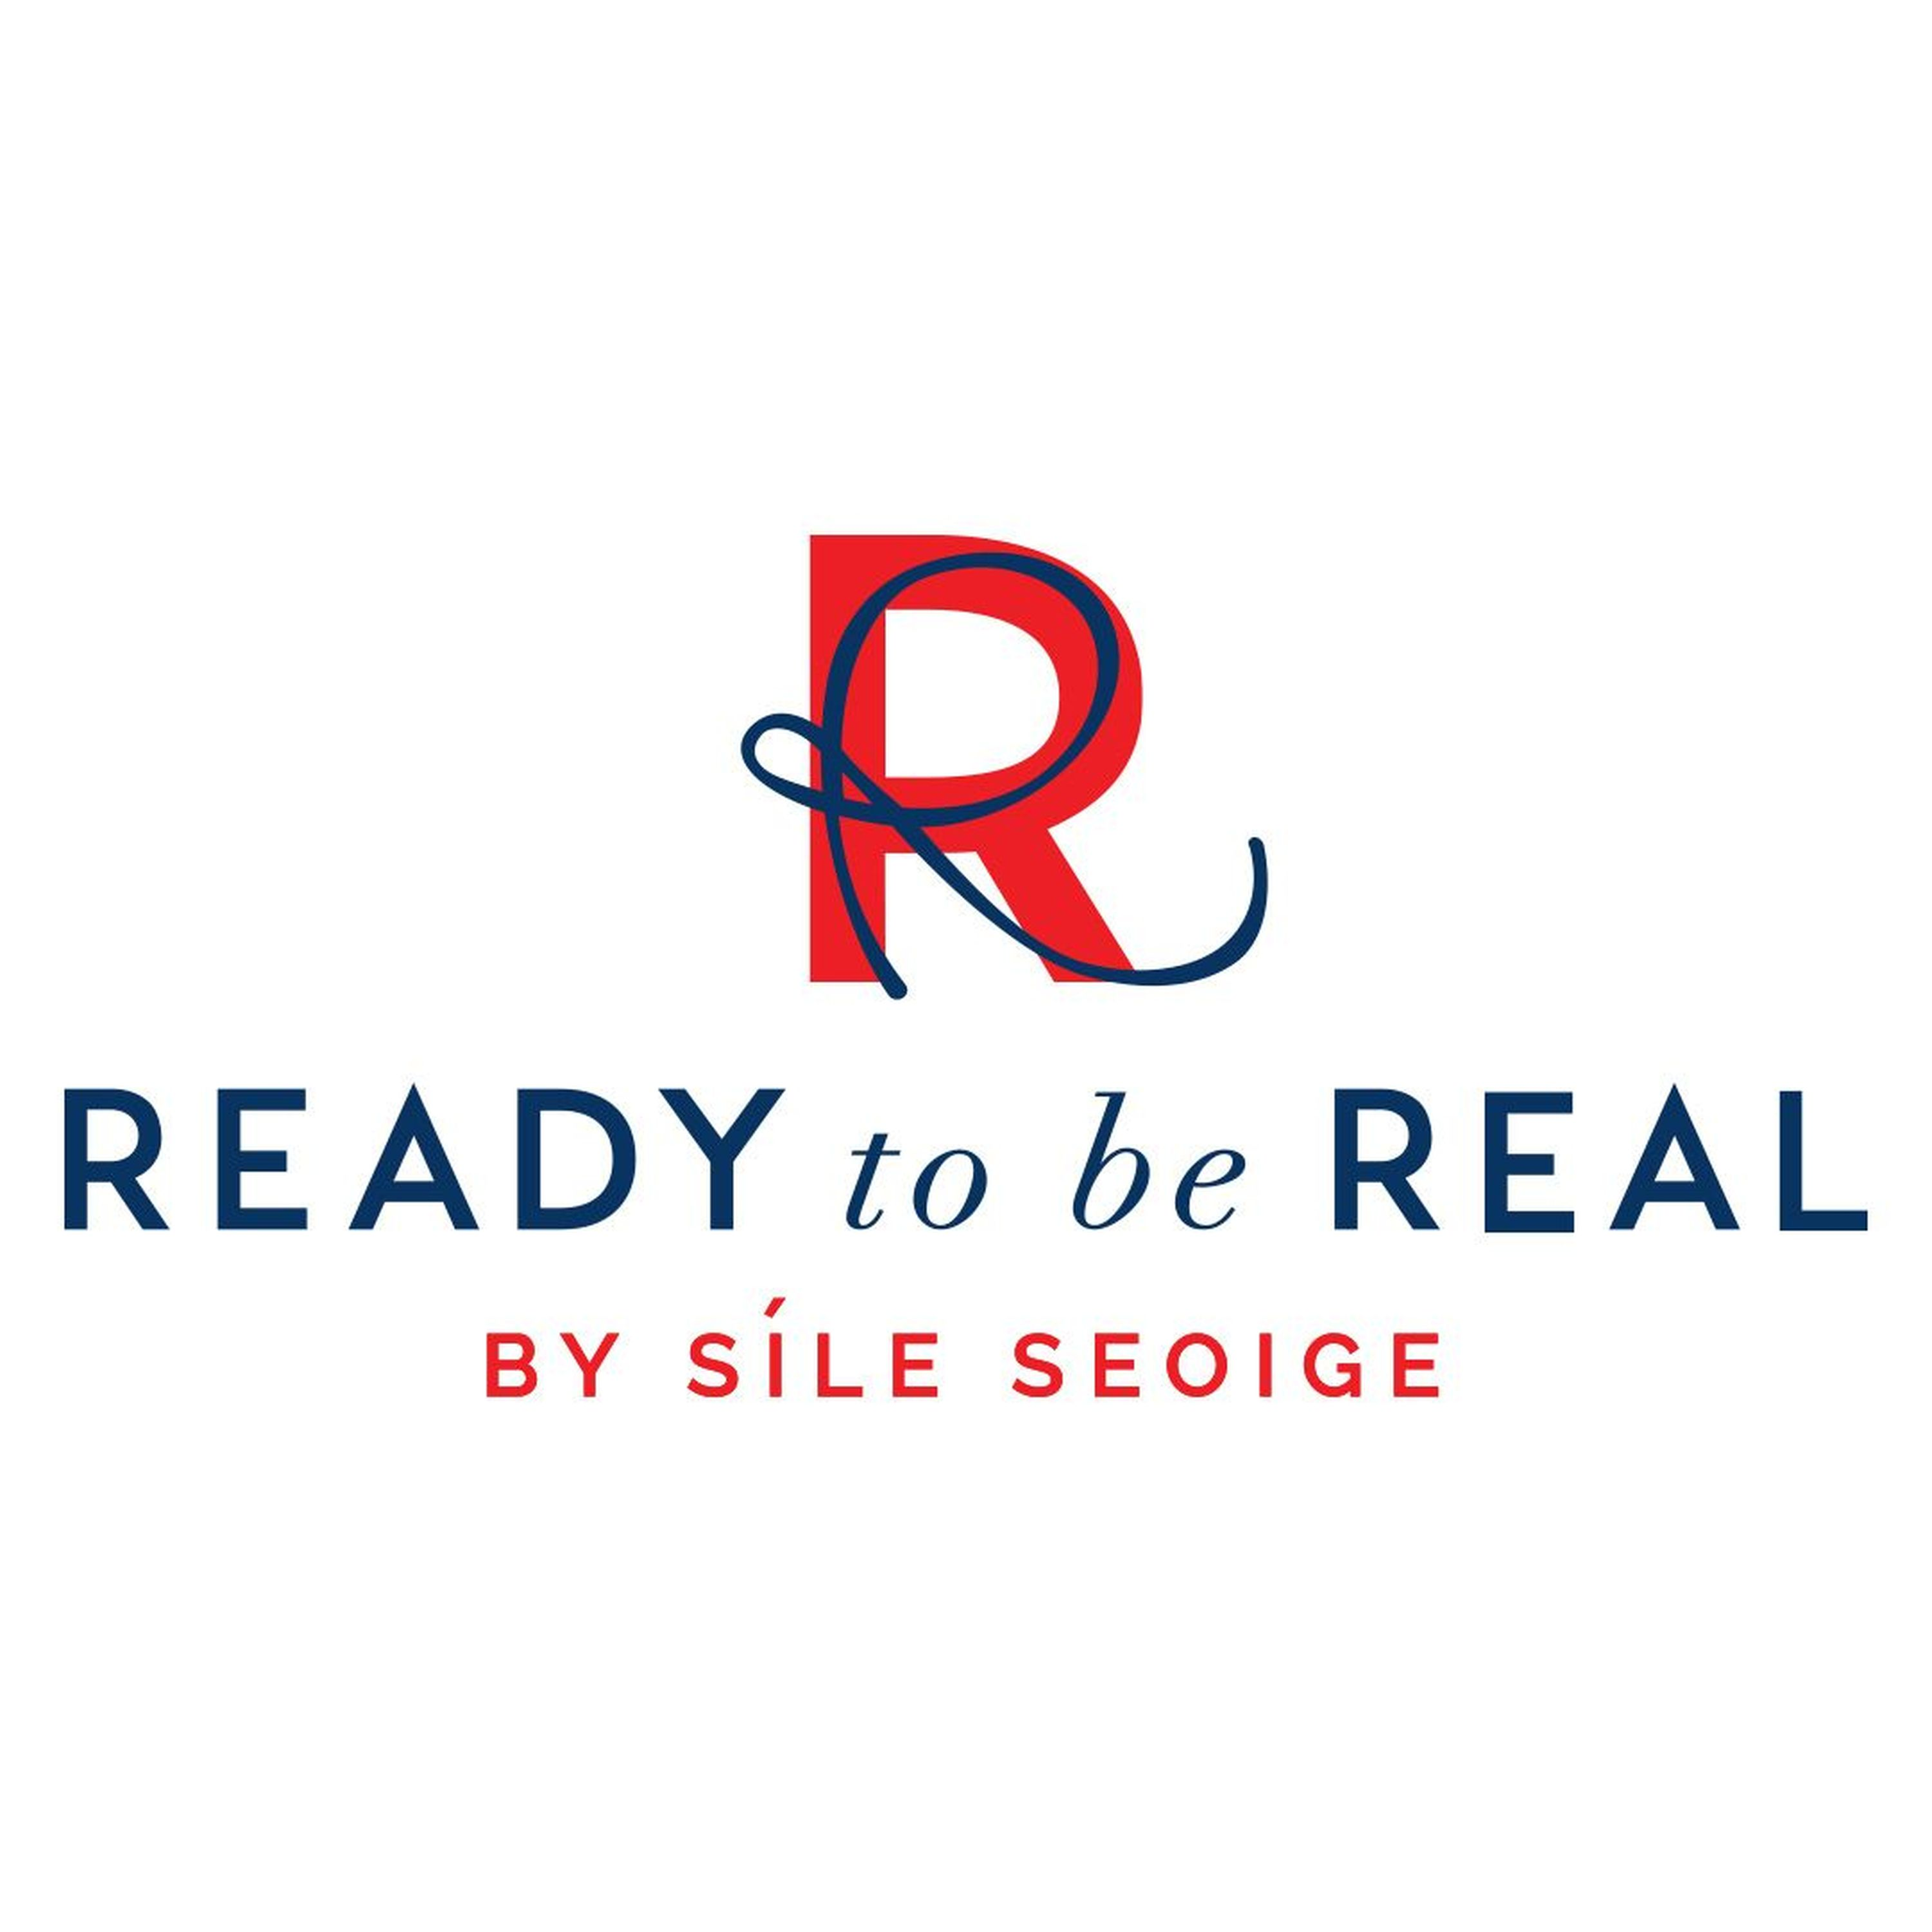 2020 Ready to be Real compilation